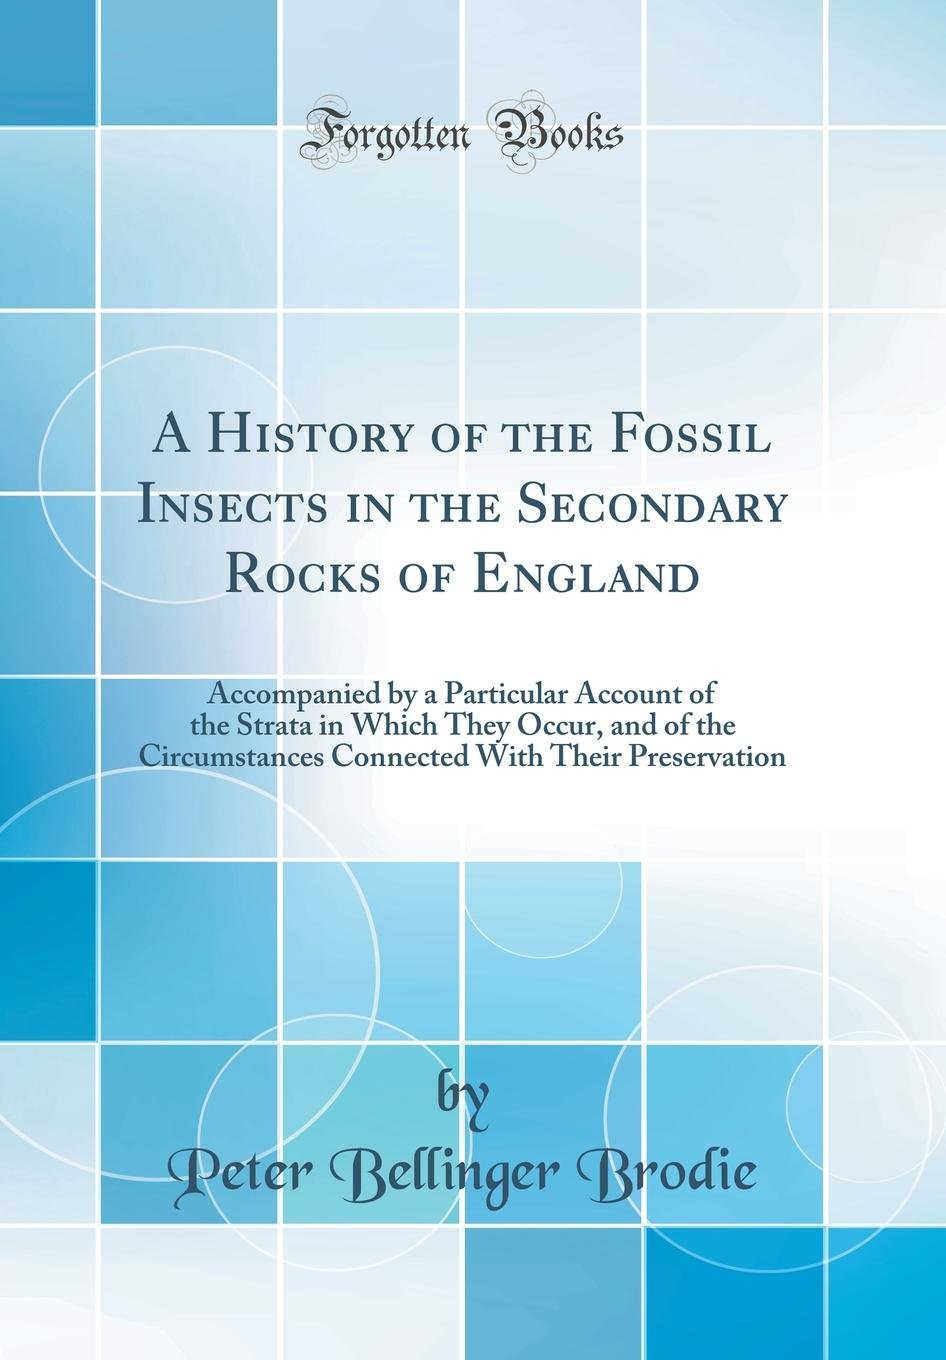 A History of the Fossil Insects in the Secondary Rocks of England: Accompanied by a Particular Account of the Strata in Which They Occur, and of the ... with Their Preservation (Classic Reprint) PDF